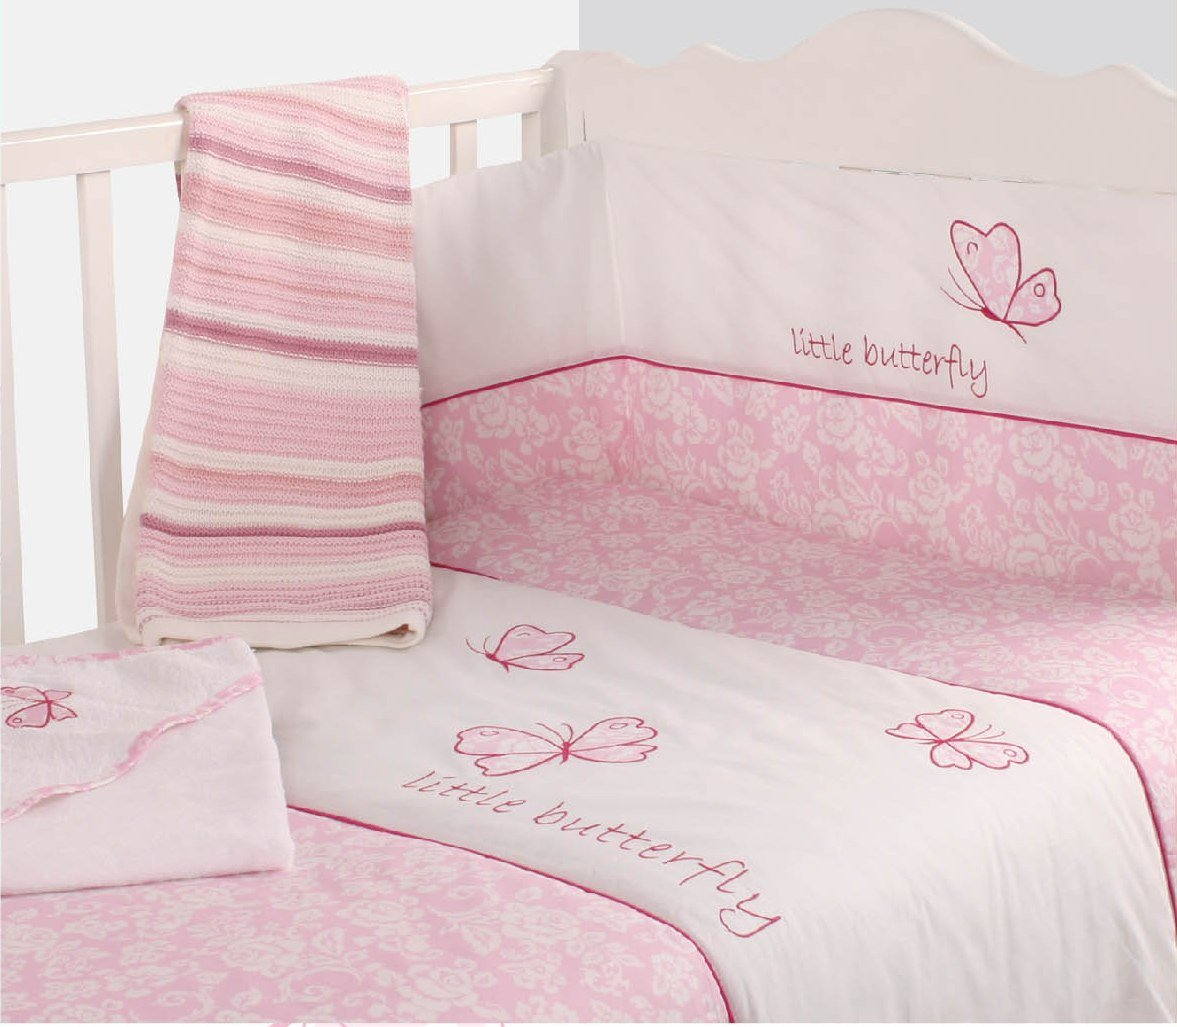 Baby girl cot bed bedding sets - Nursery Pink Butterfly Baby Bale Bedding Set Floral Print Reversible Cot Quilt And Bumper Set Polycotton Baby Cot Bed Set